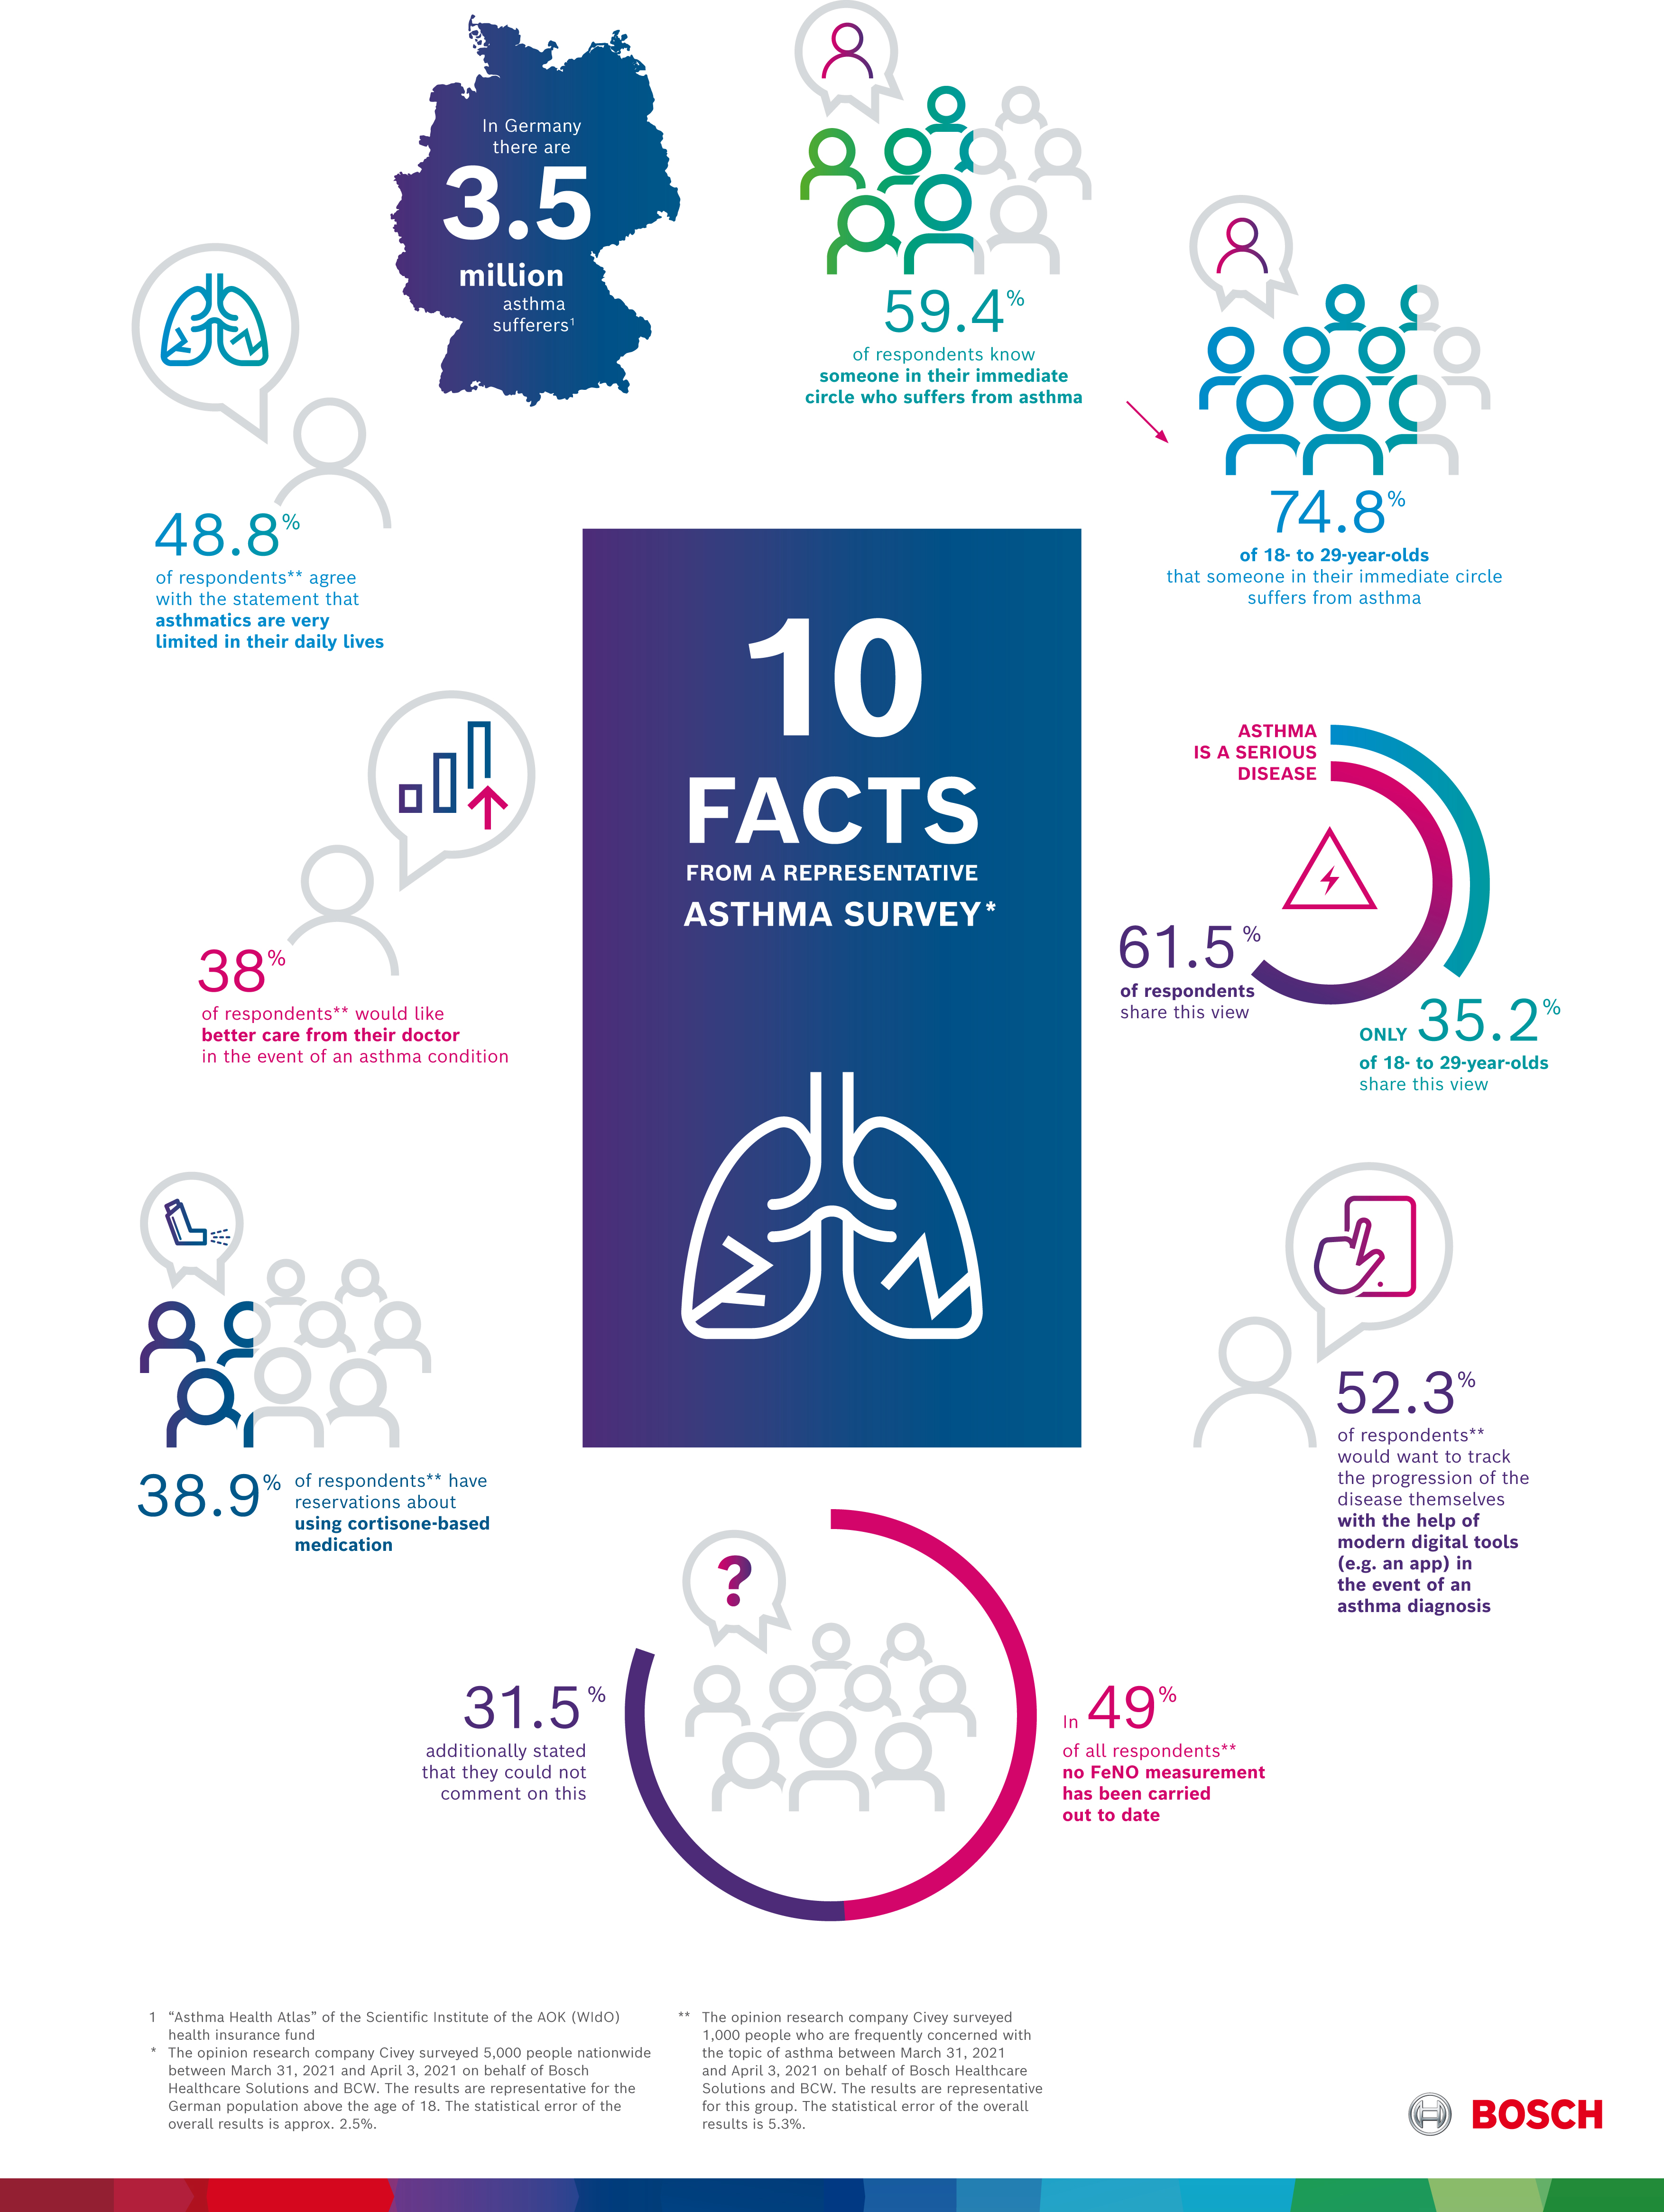 10 facts about asthma